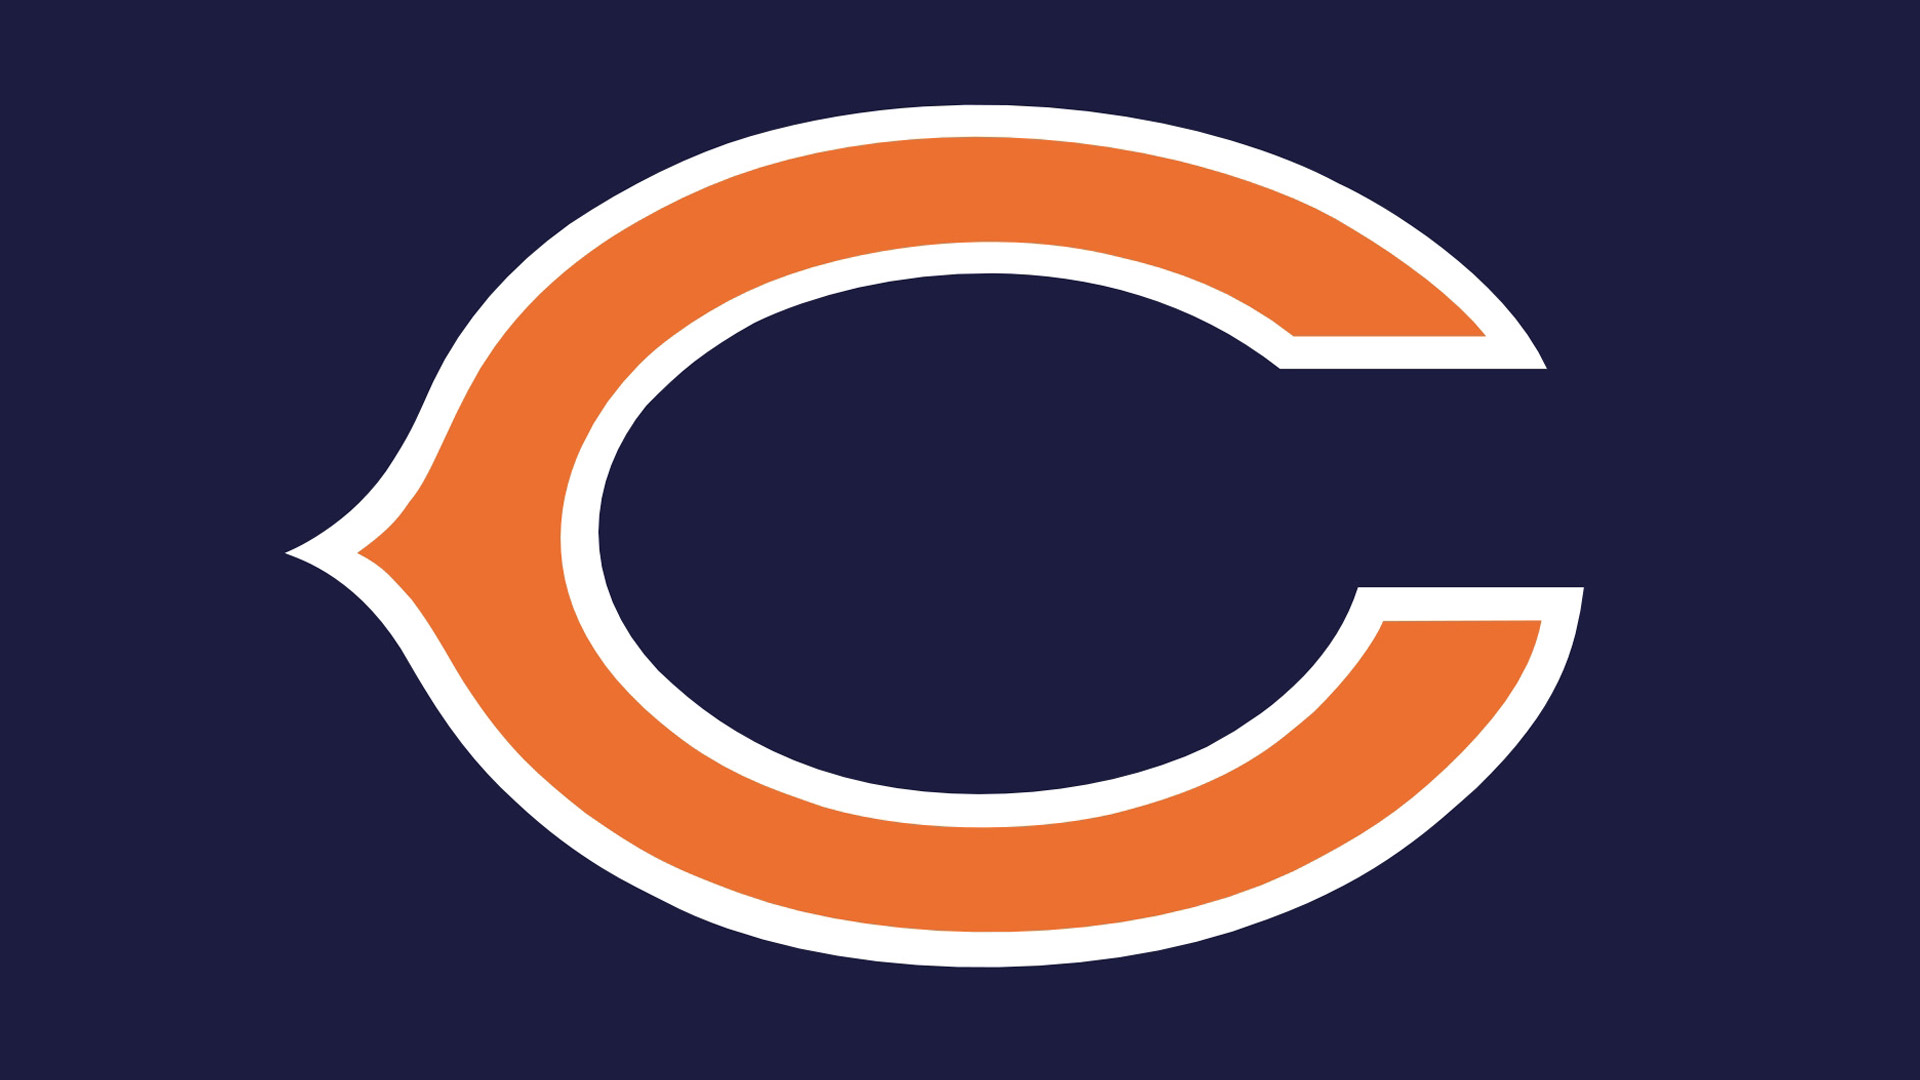 Chicago Paper Bears Multimedia Software wallpapers HD   162958 1920x1080